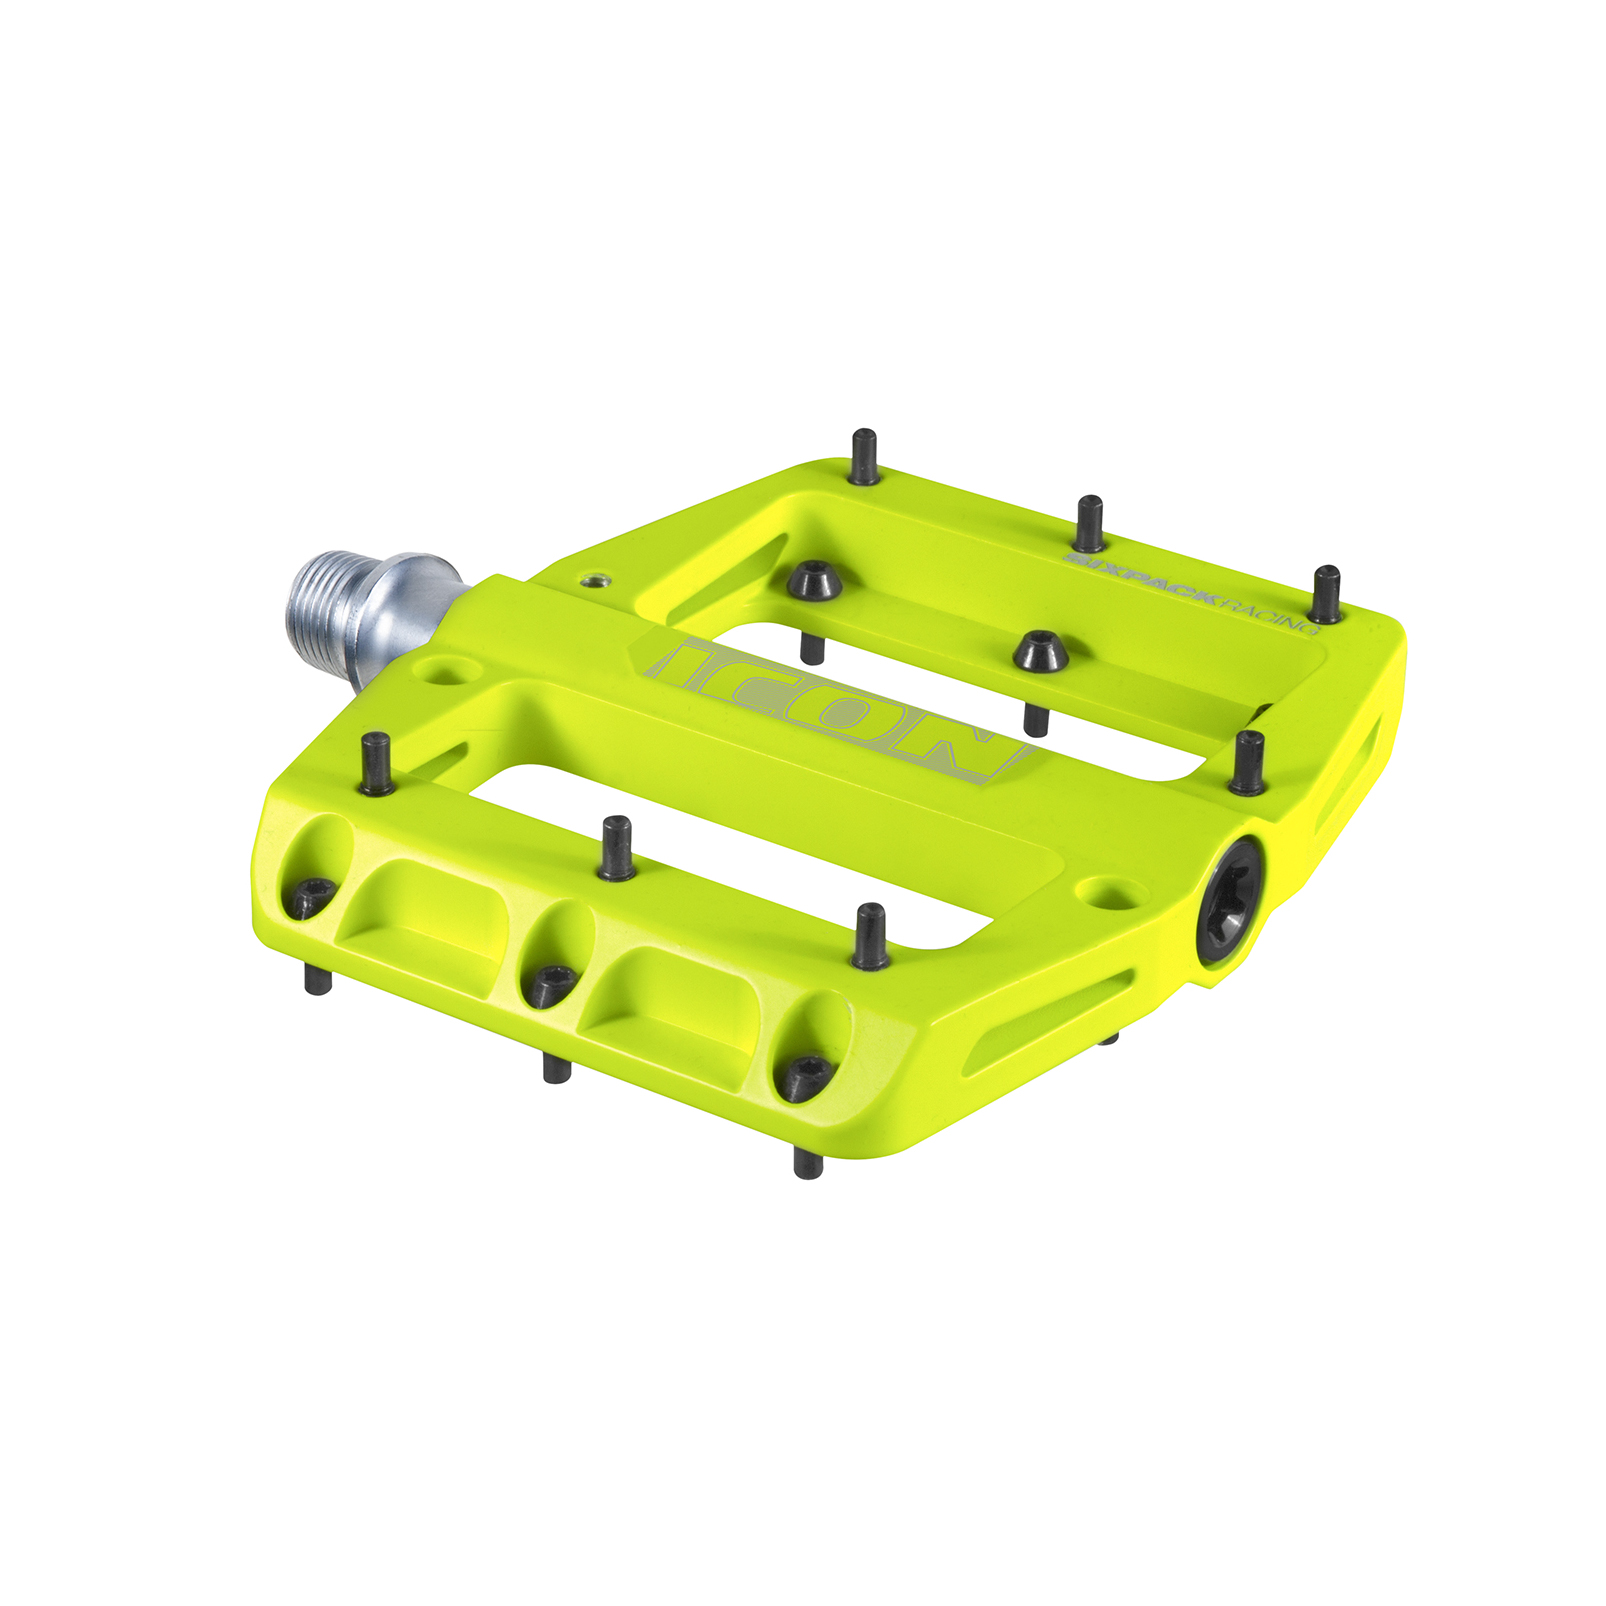 Flat Pedal/flat for MTB/MOUNTAIN BICYCLE, enduro and DH